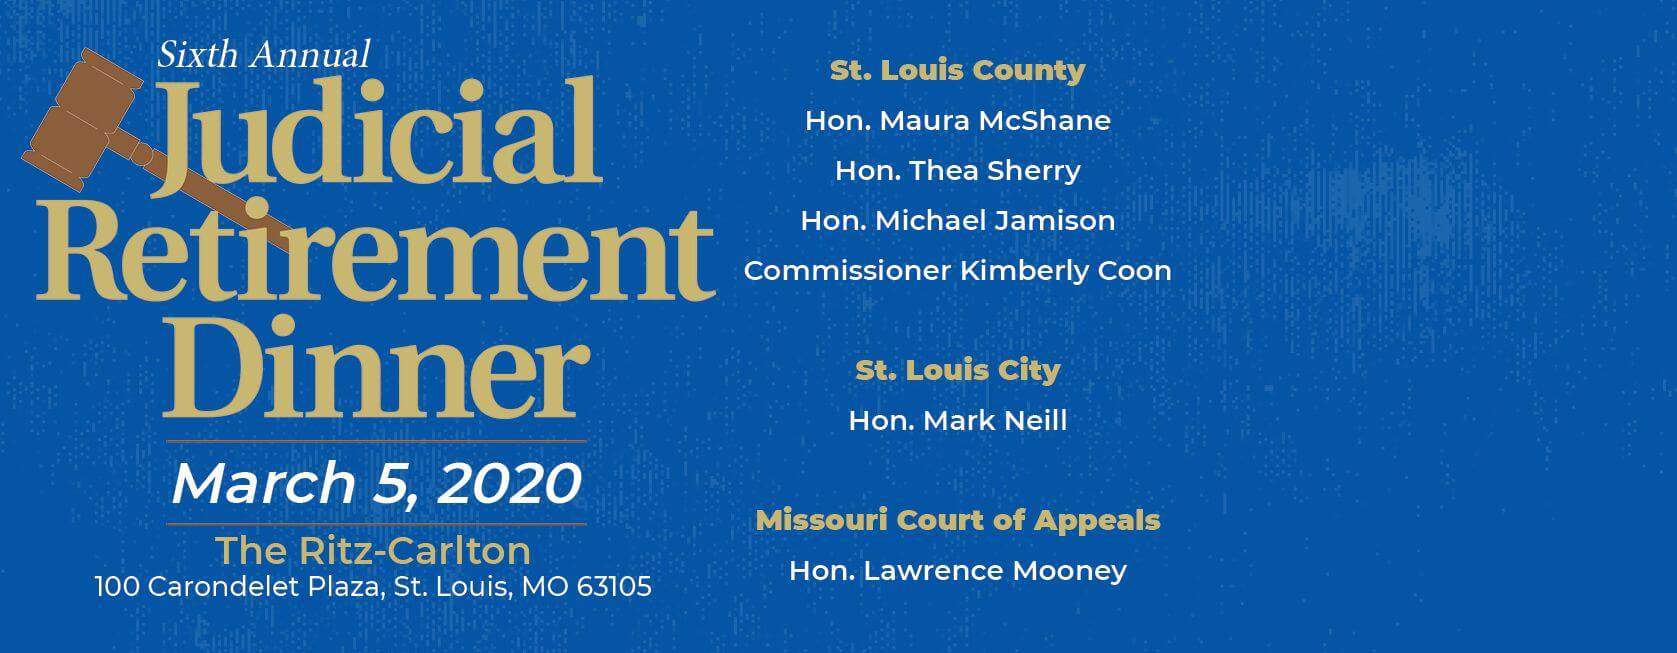 Join us for the 2020 Judicial Retirement Dinner on March 5 at The Ritz-Carlton. Register now!